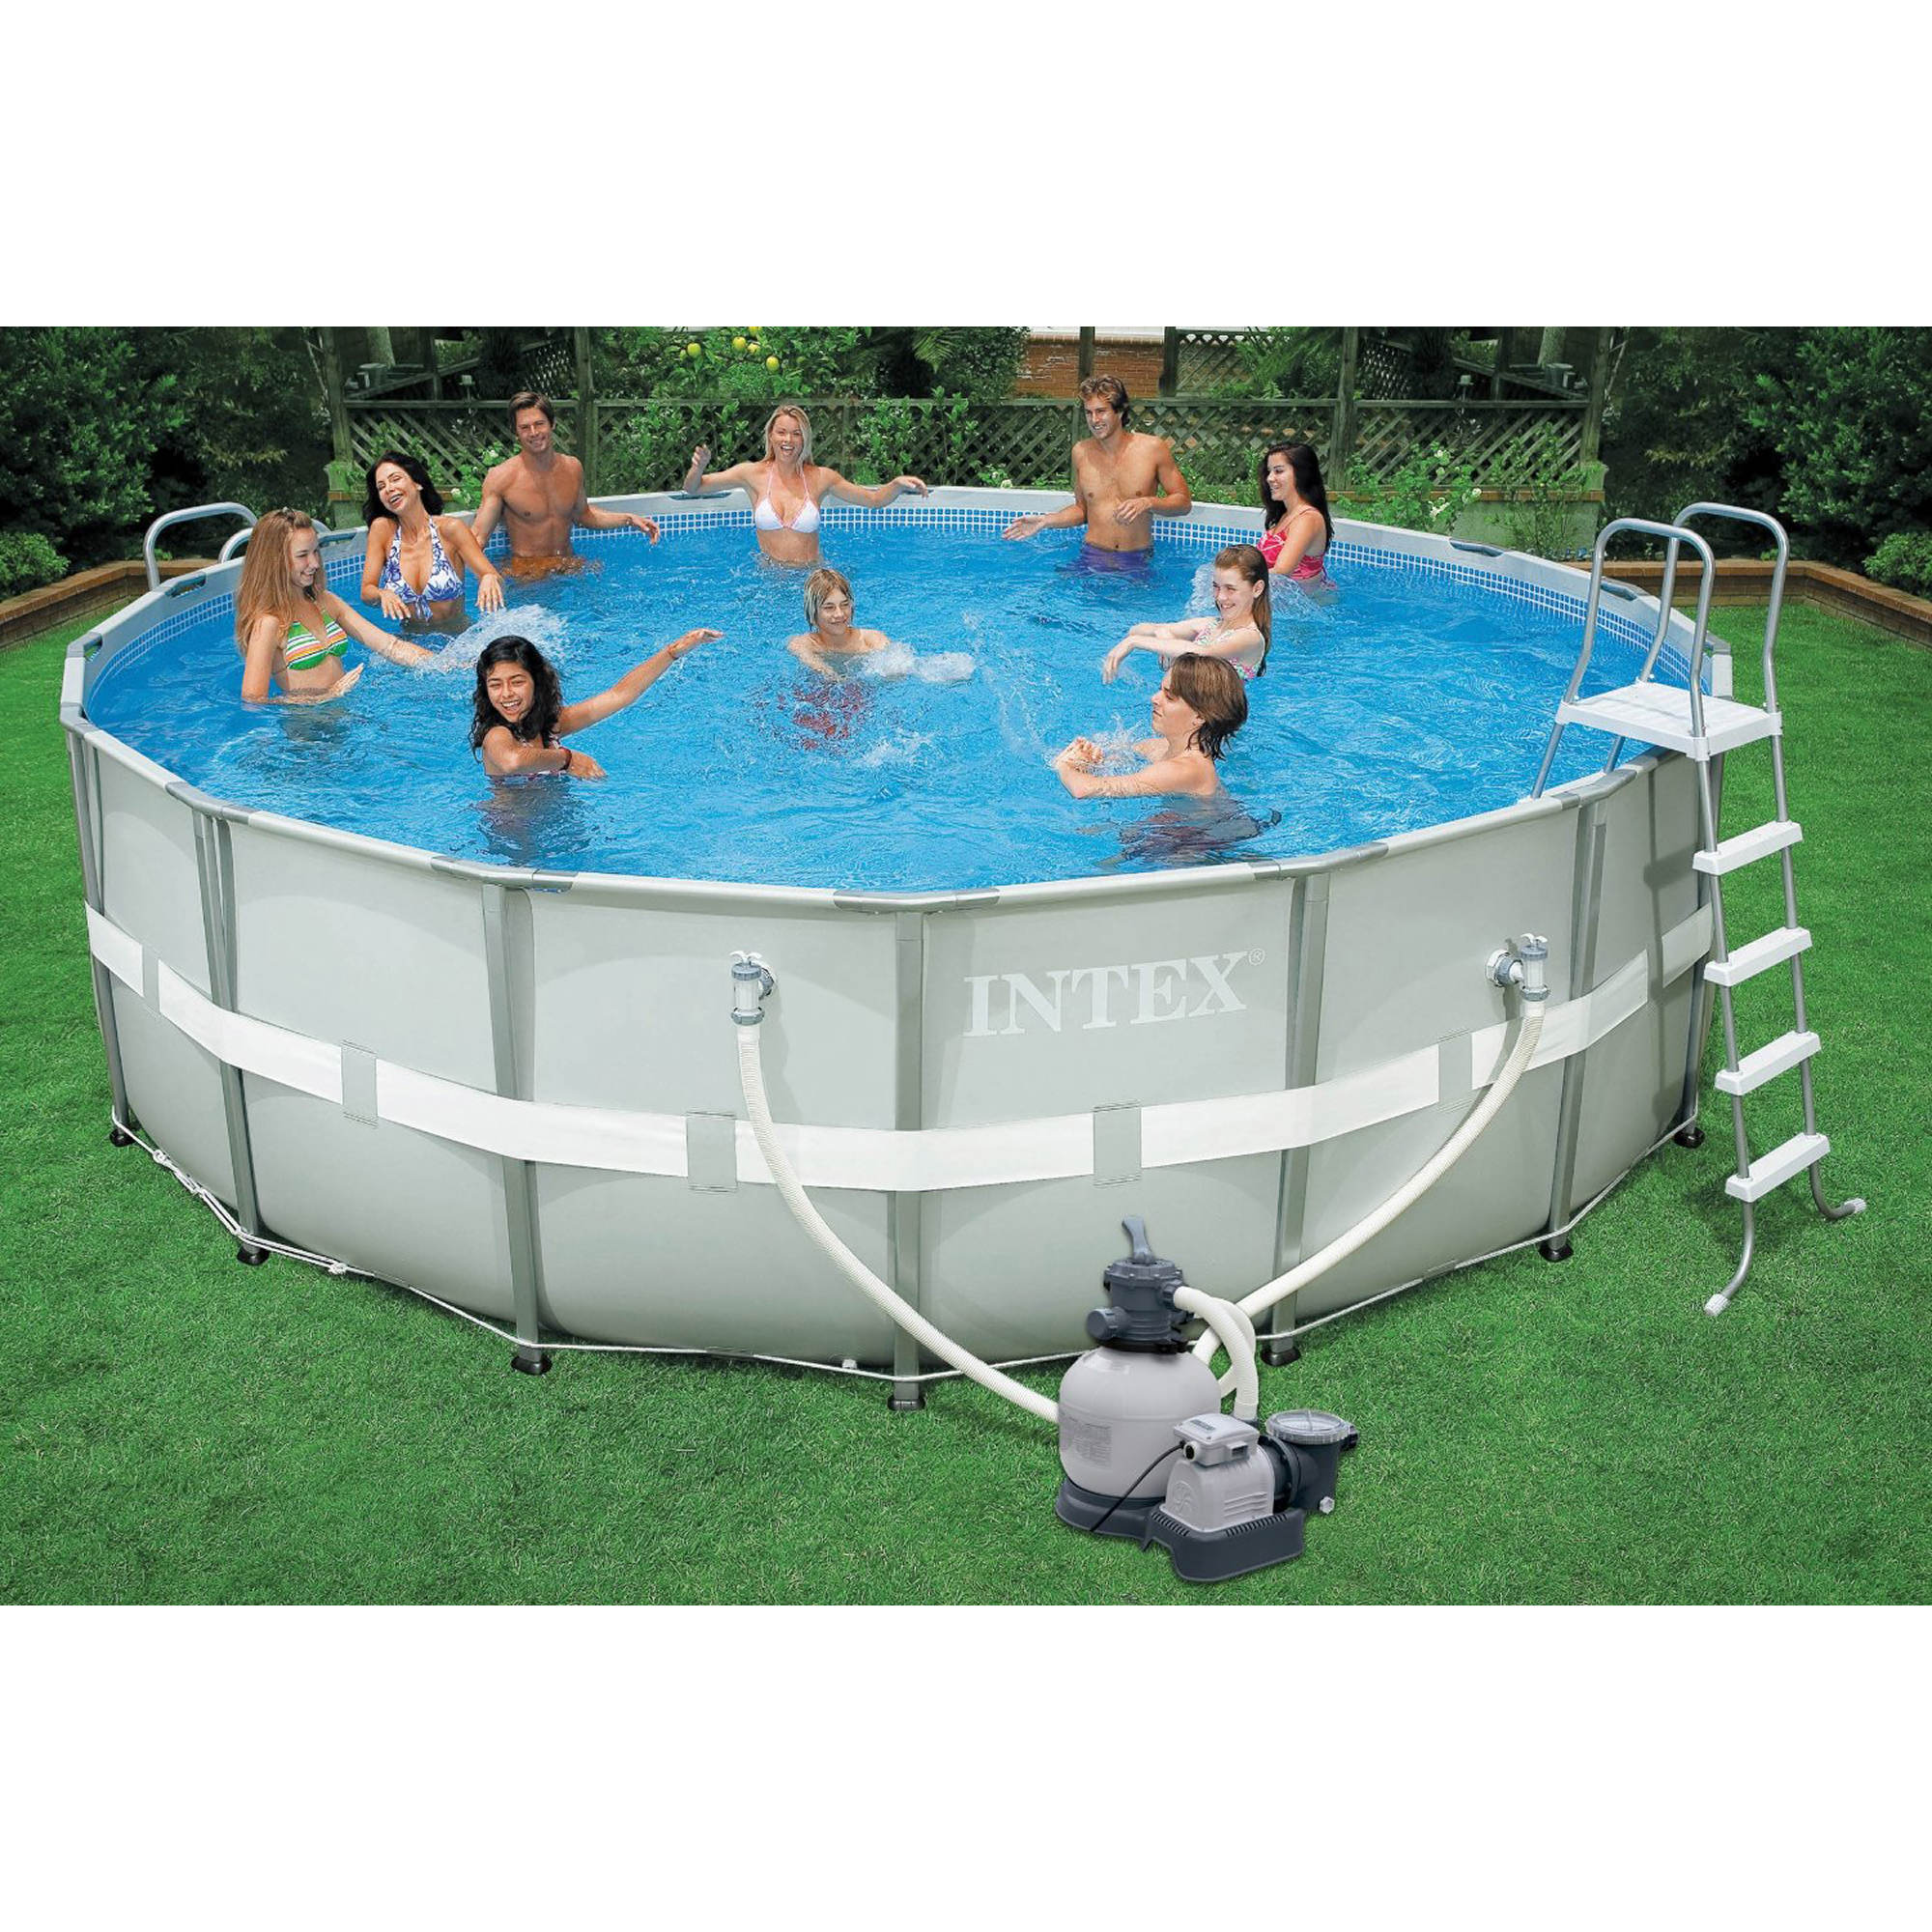 intex 18 x 52 round aboveground ultra frame pool